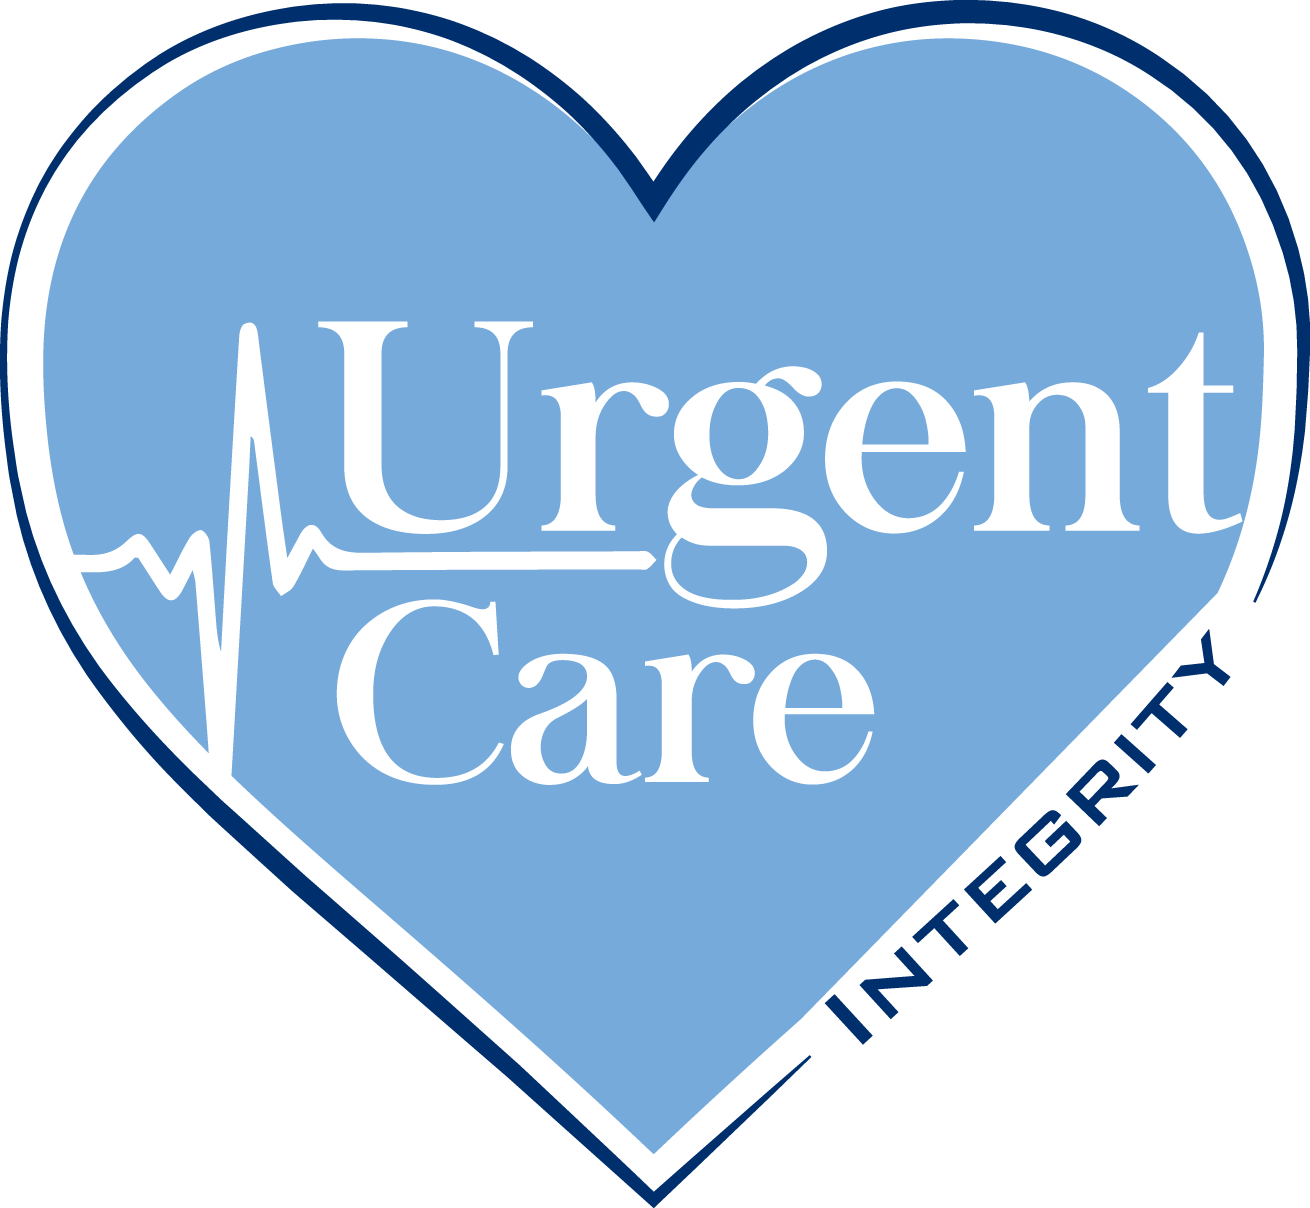 Integrity Urgent Care - Bryan/College Station Logo